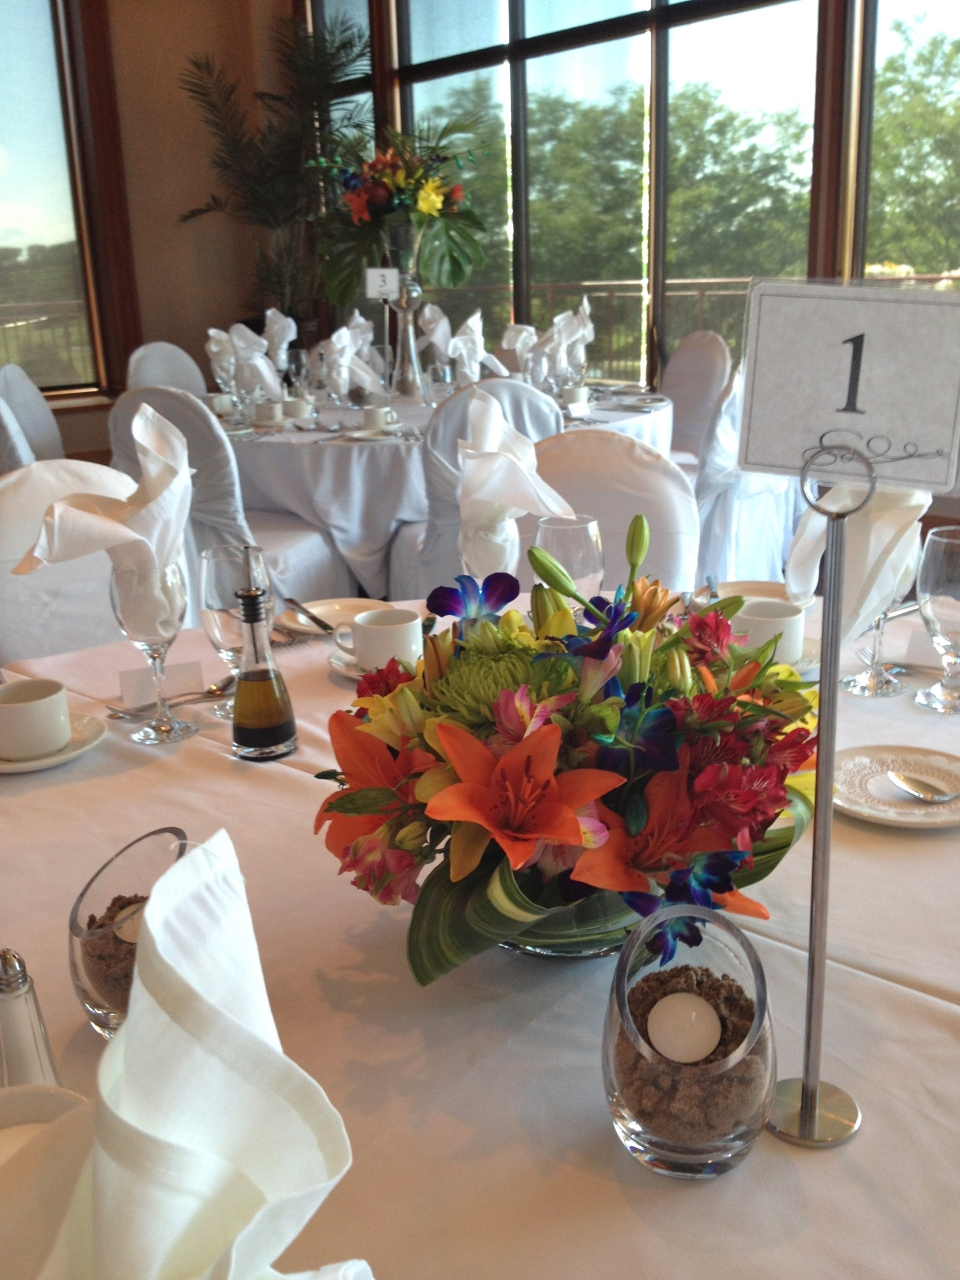 Low tropical centerpieces with sand filled candle holders